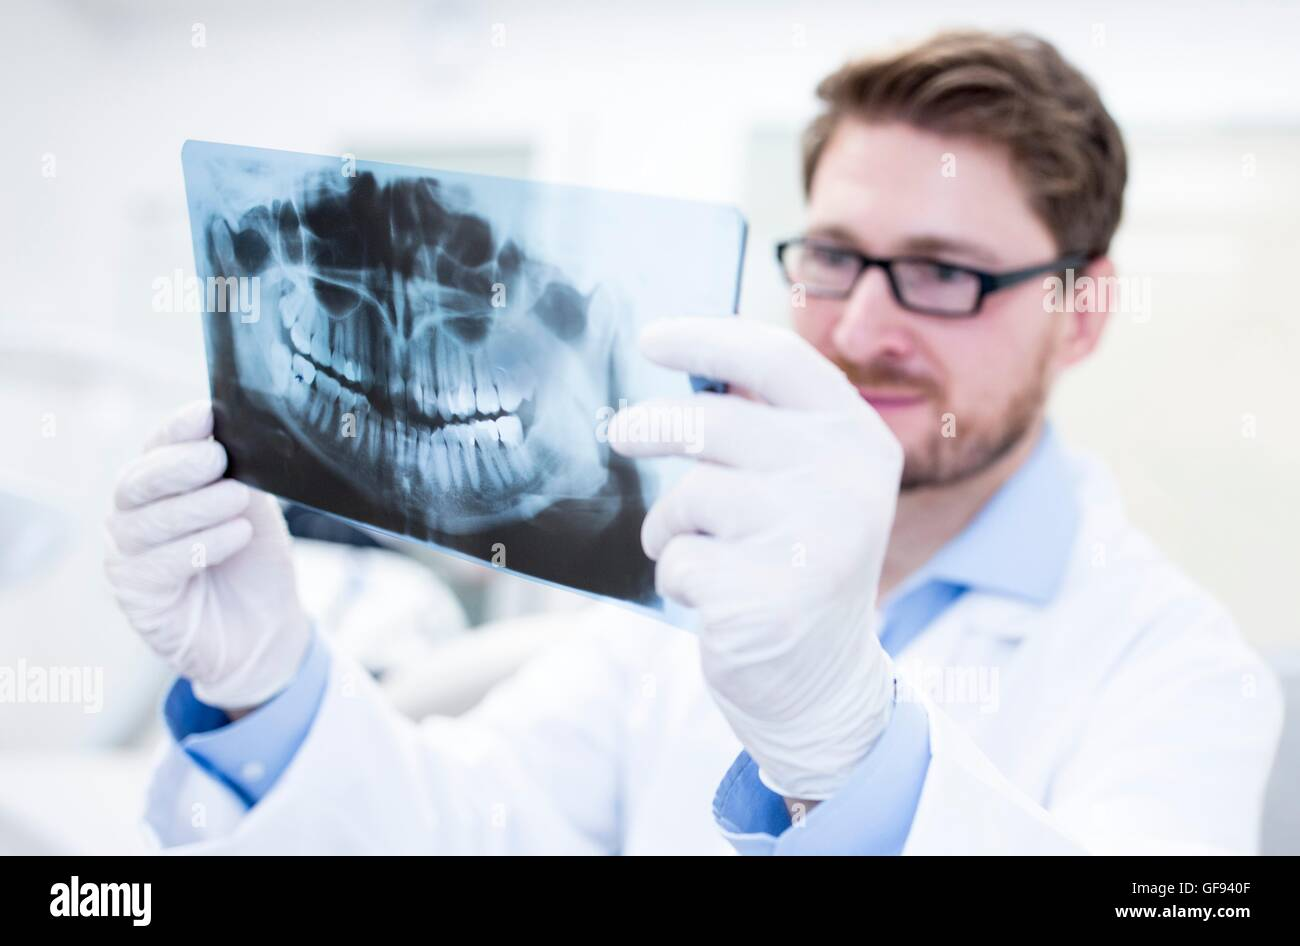 MODEL RELEASED. Dentist looking at x-ray image with dental assistance in background. - Stock Image